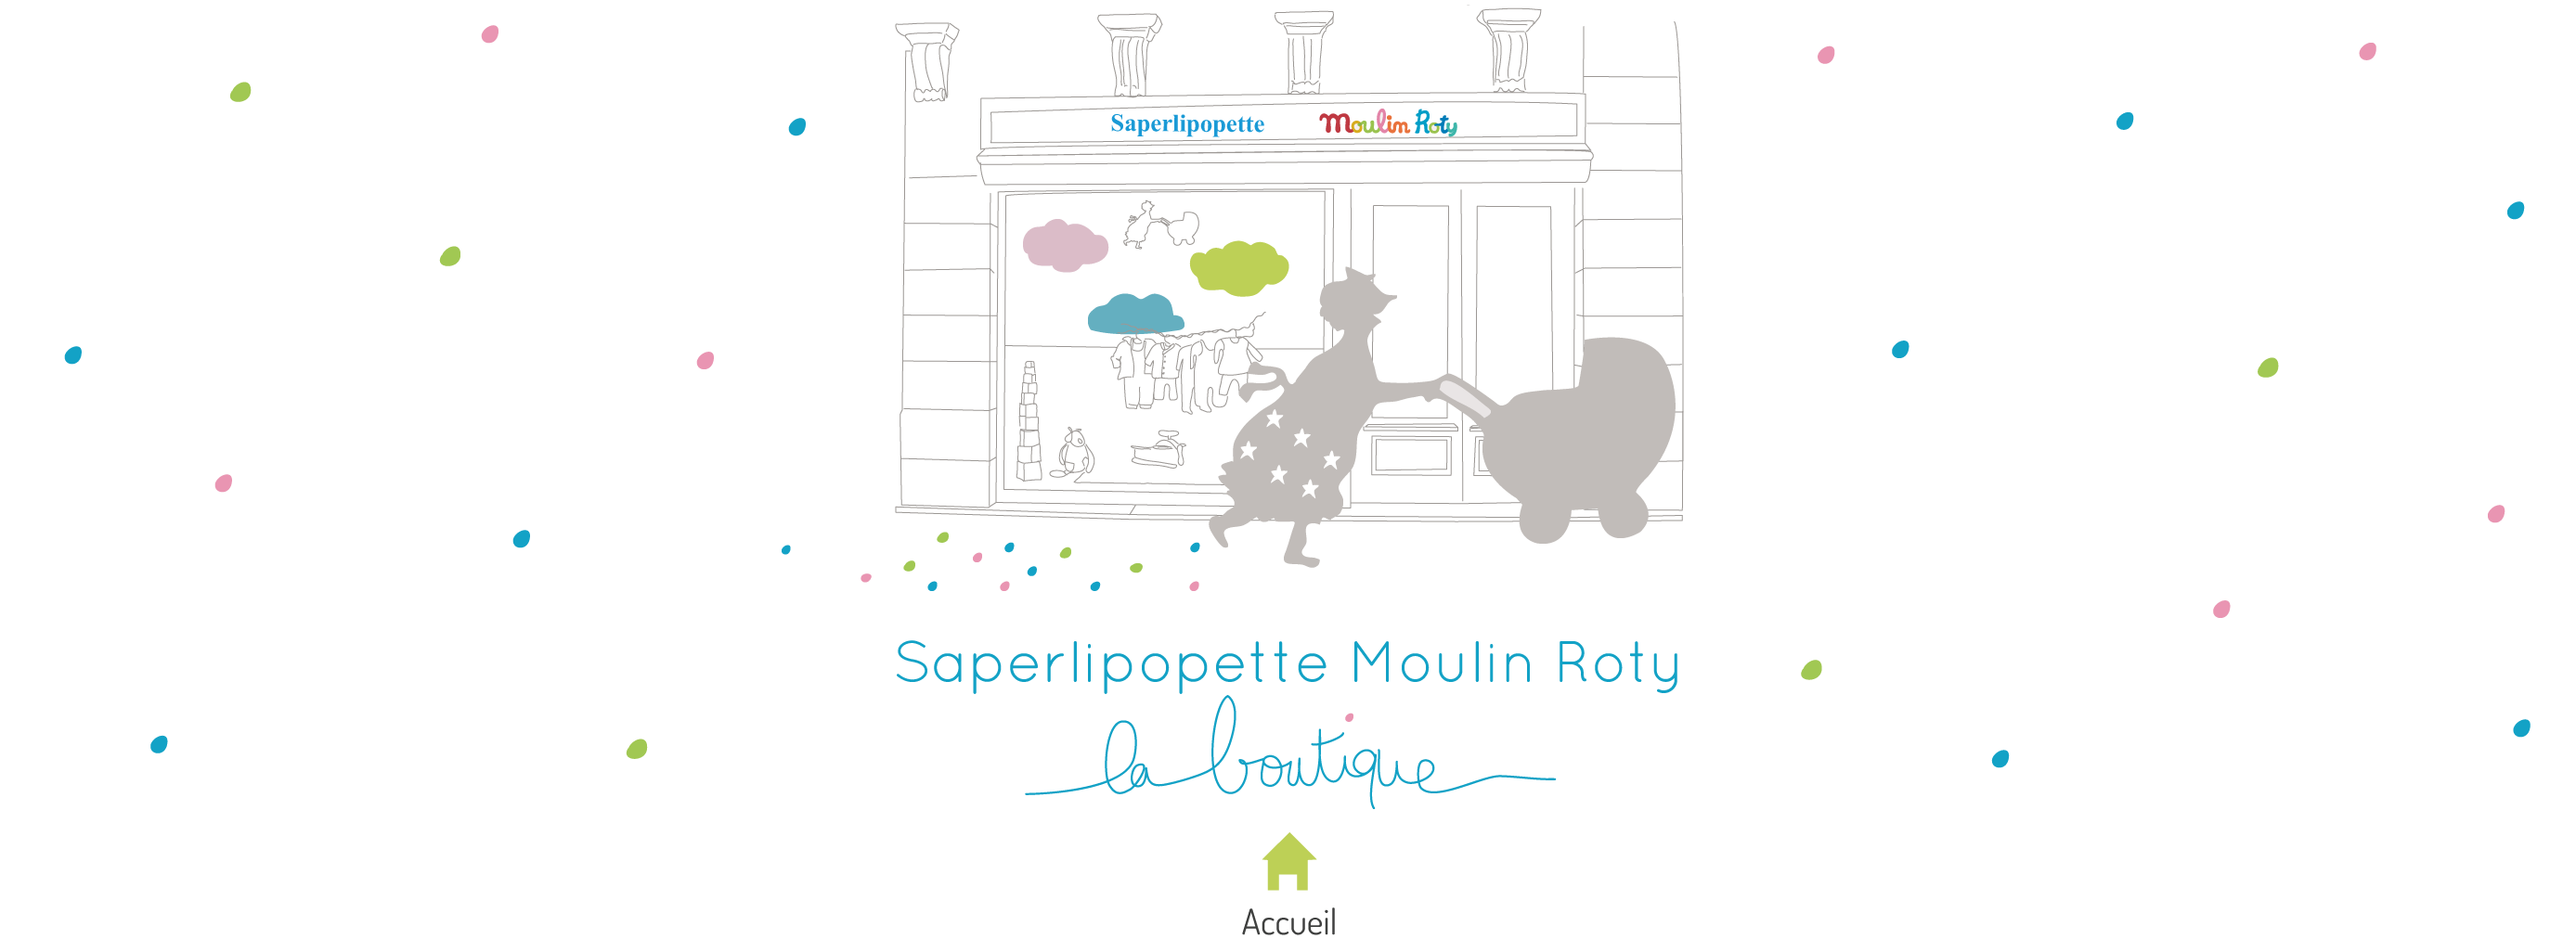 saperlipopette-moulin-roty-la-boutique